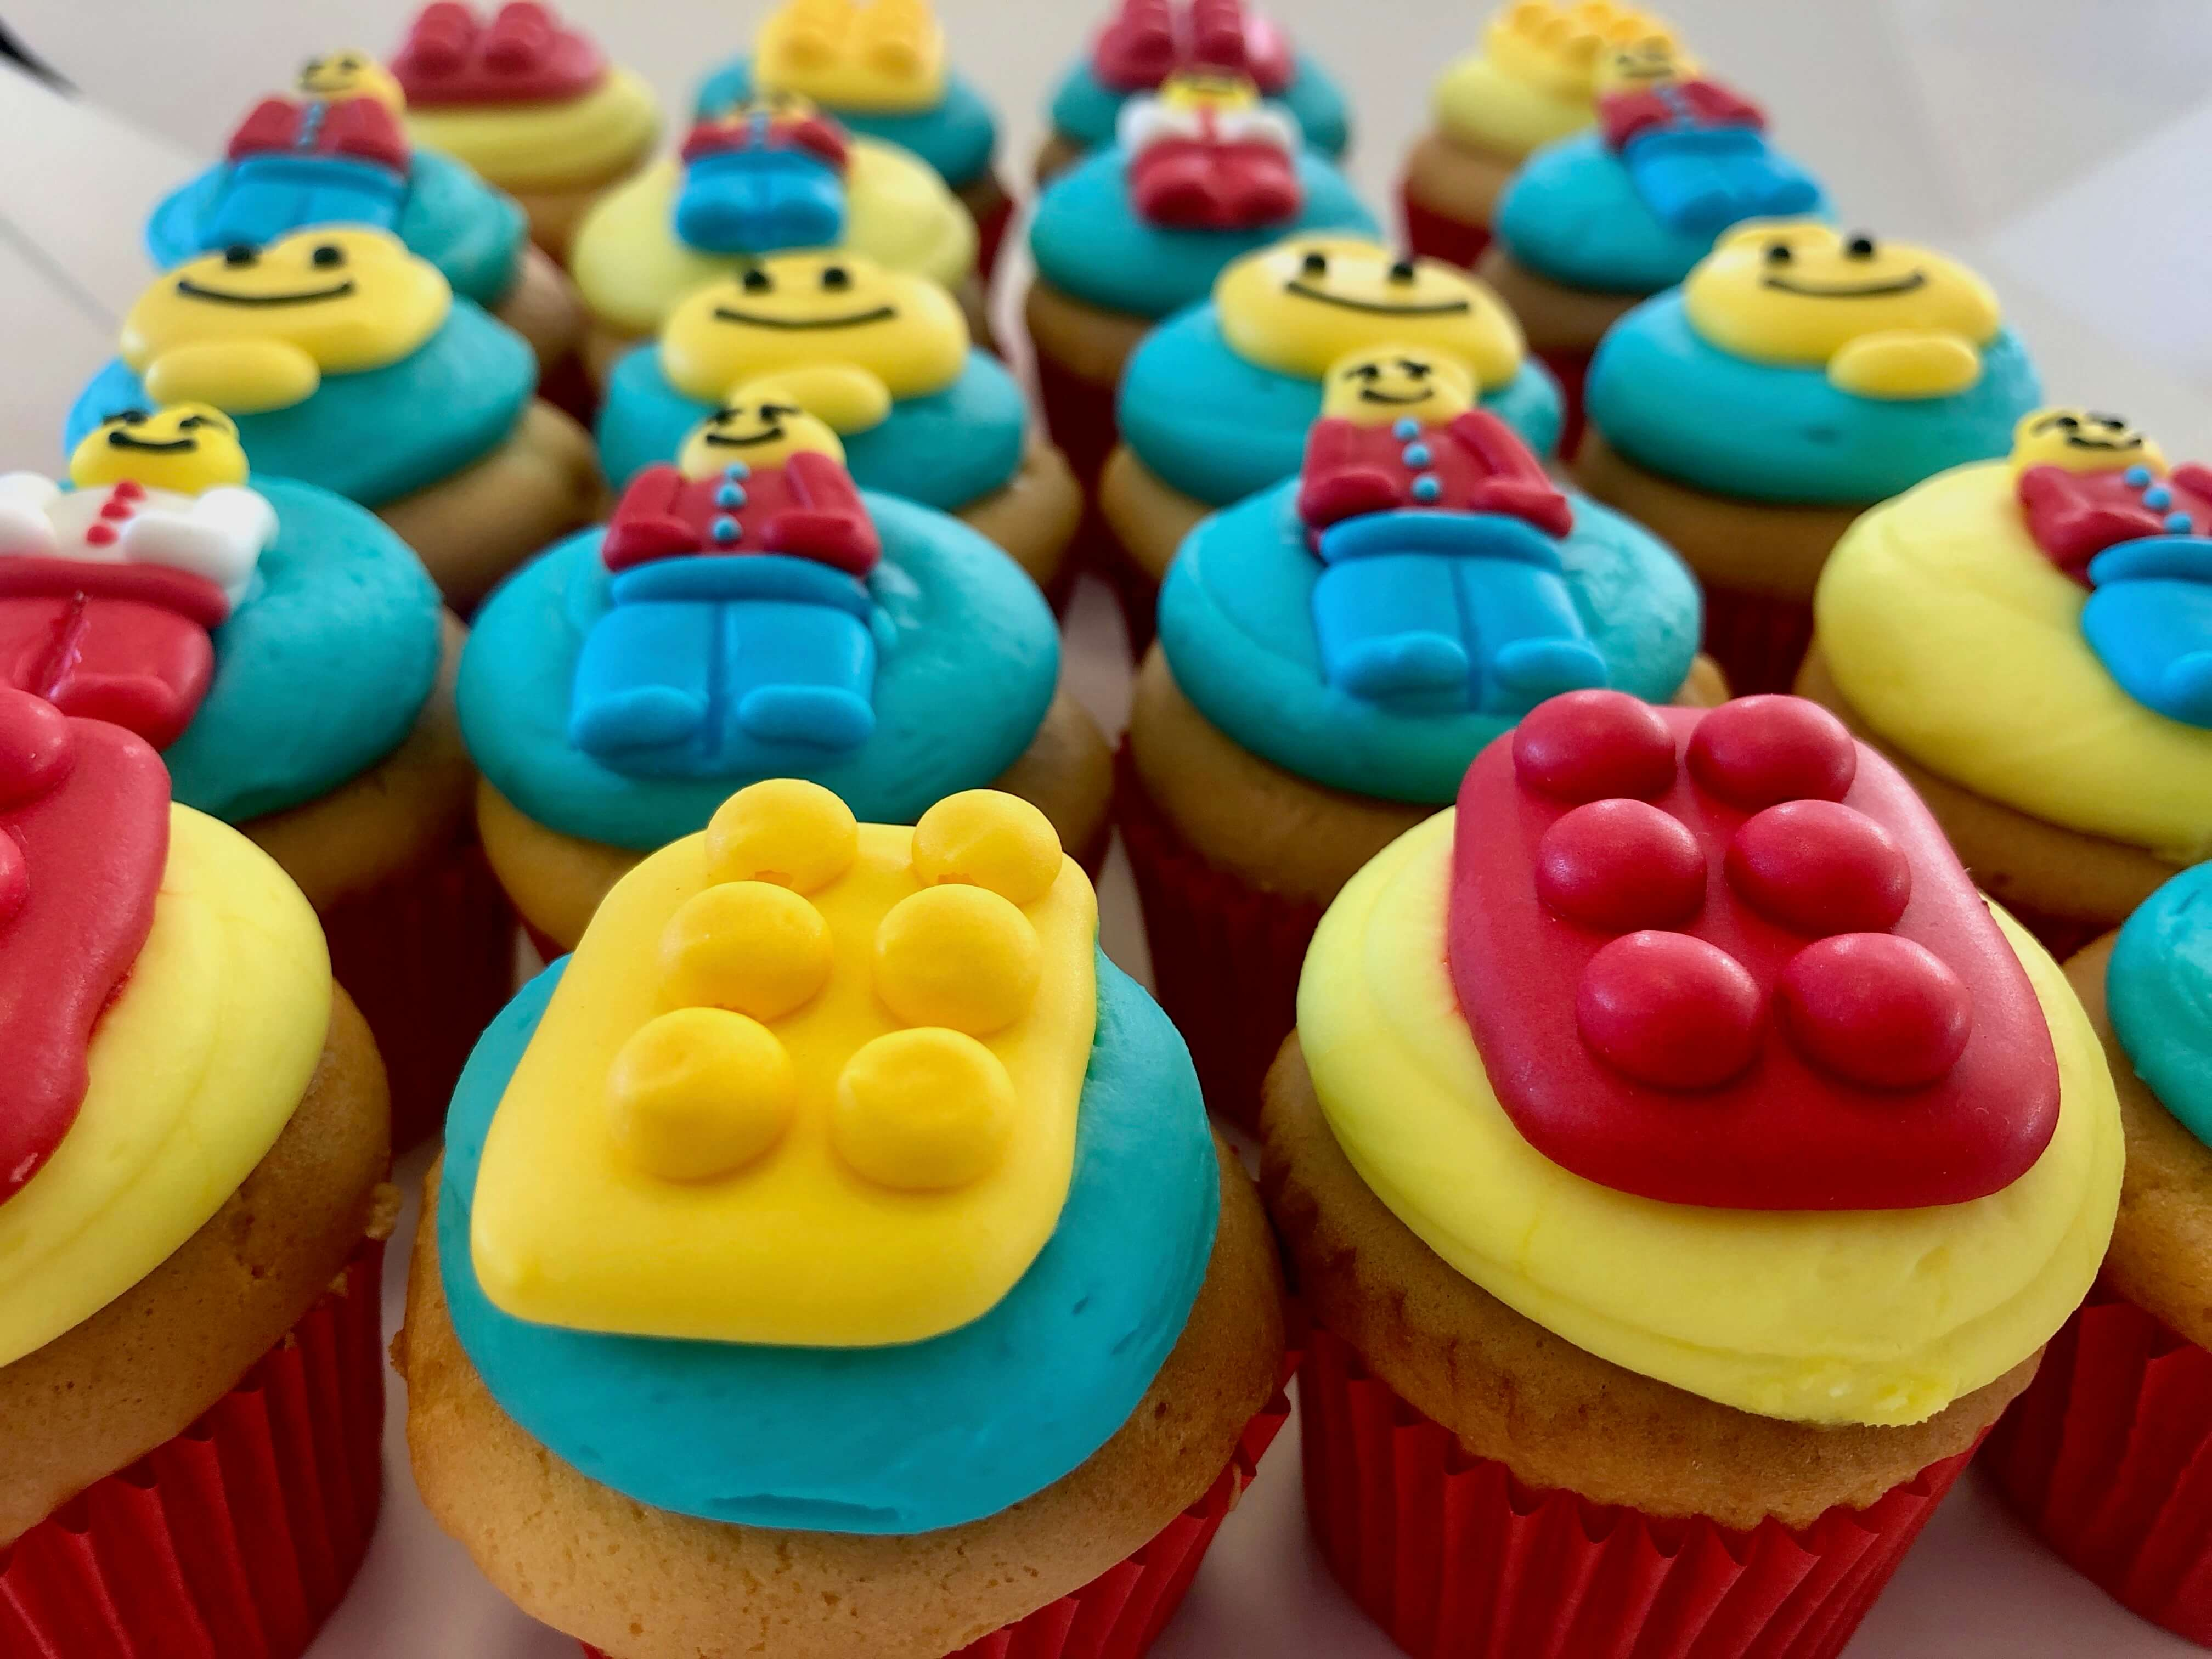 BRICKS 4 KIDZ | Kids Brthday Party Venue Food | LEGO Cupcakes 3